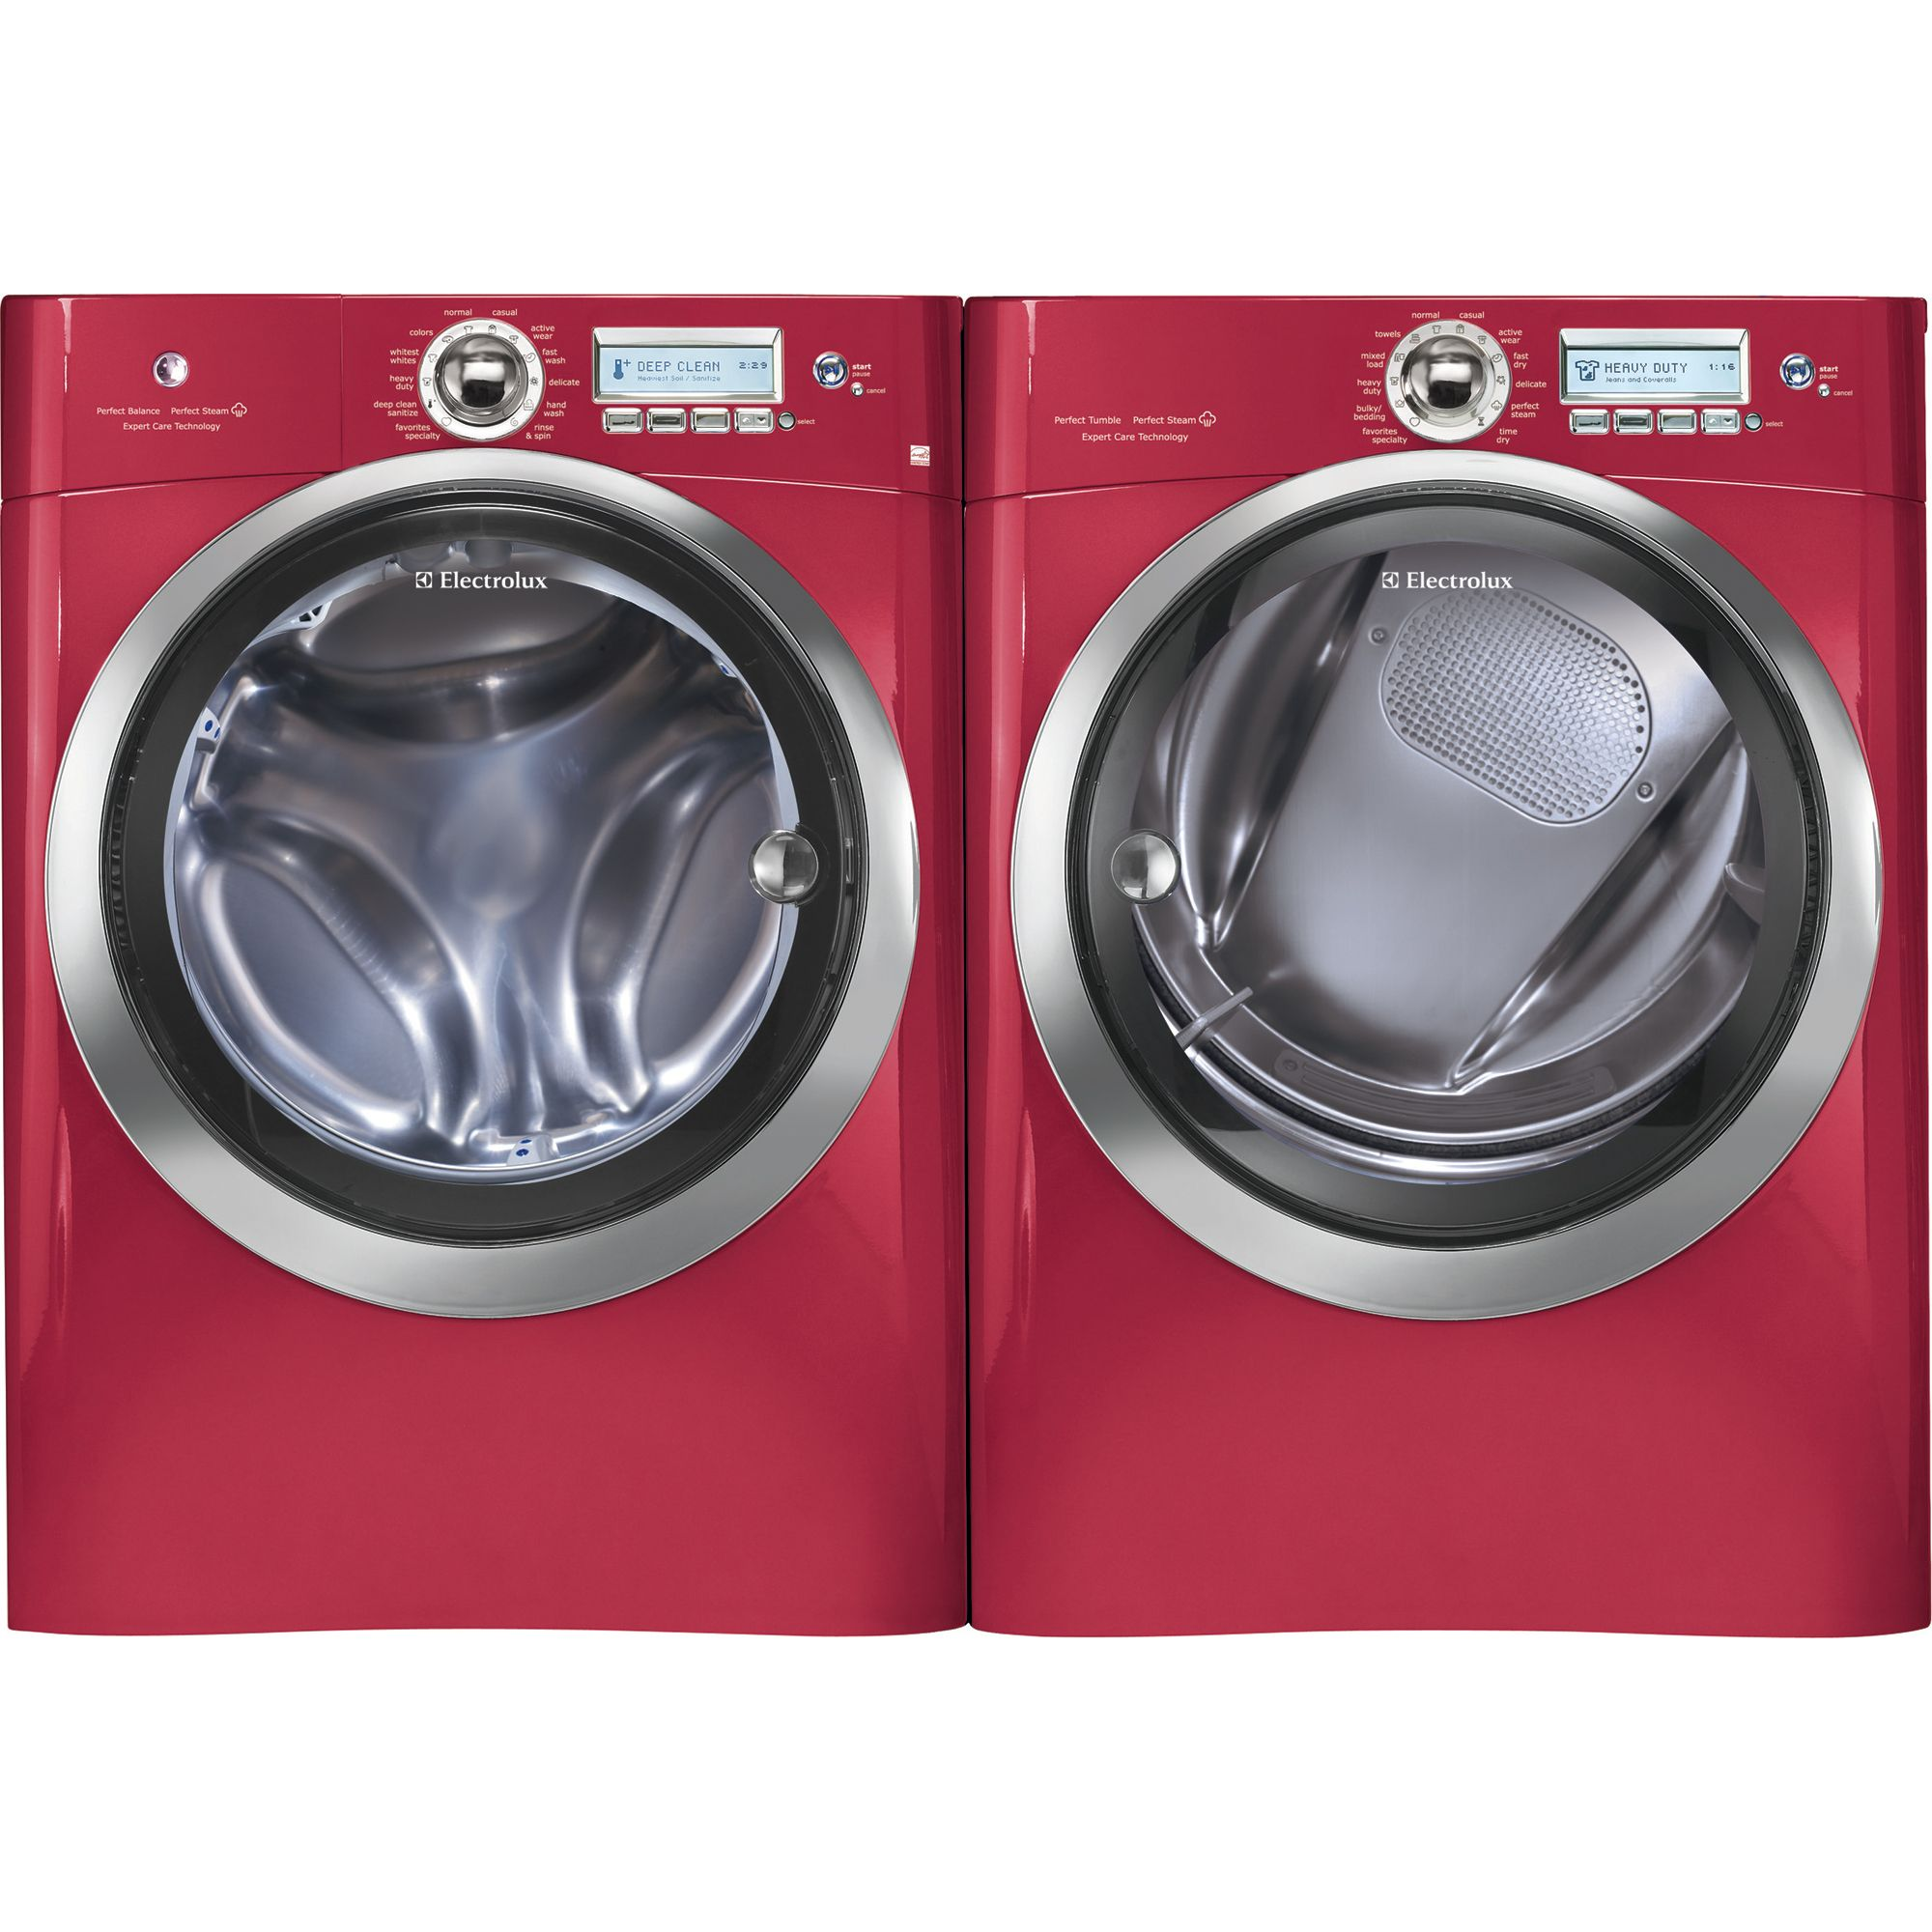 Electrolux 8.0 cu. ft. Steam Electric Dryer (EWMED70J)